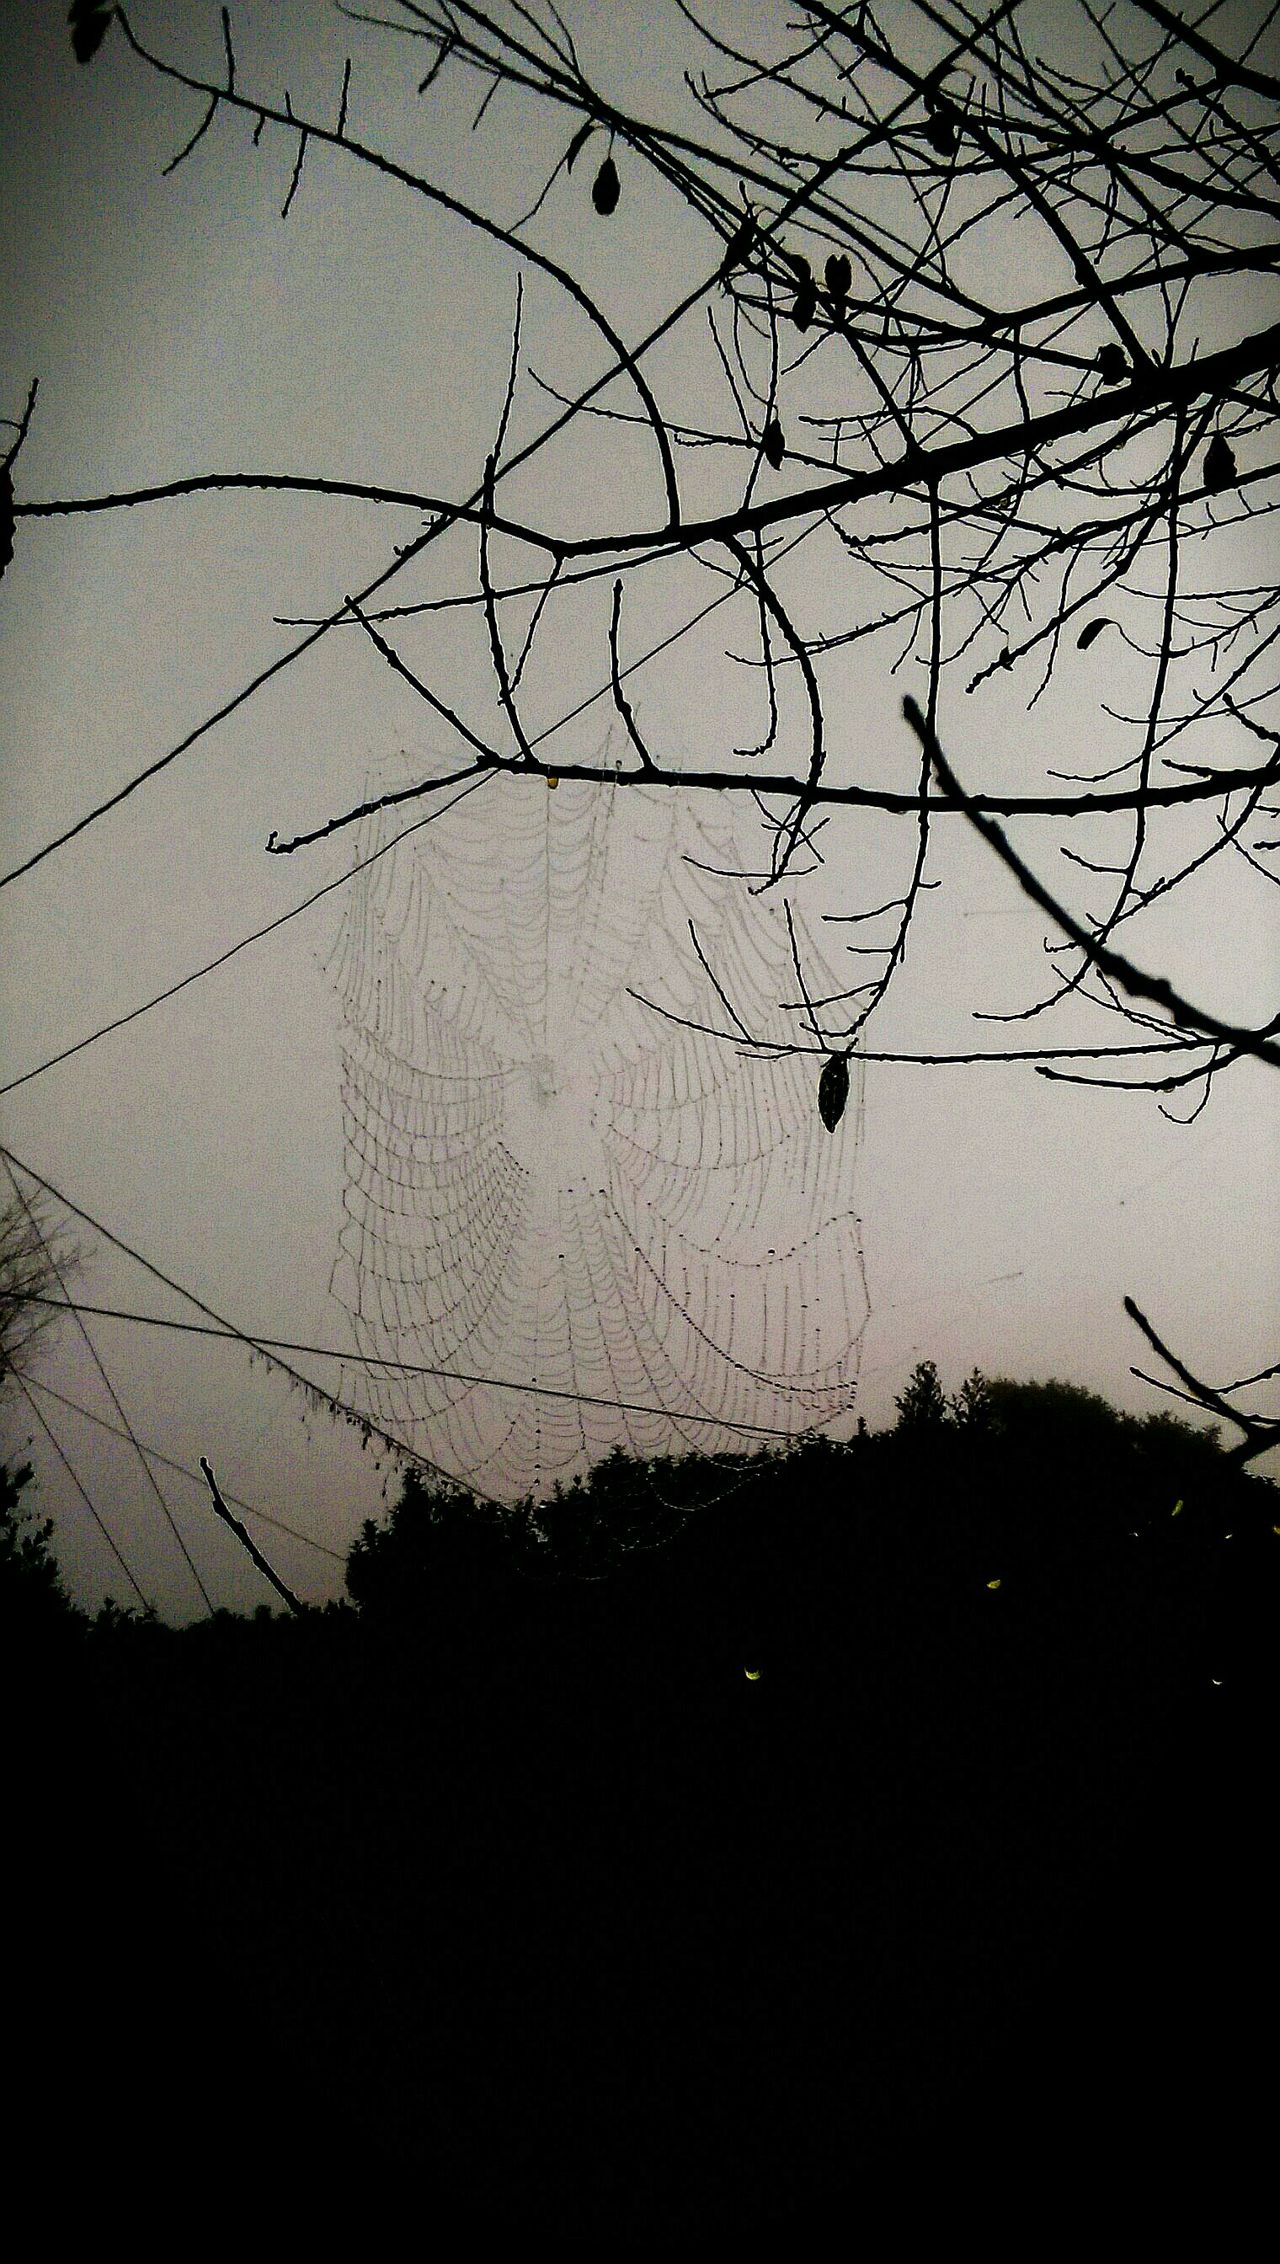 Dawn Of A New Day Nature Outdoors Beauty In Nature Florida Skies Dreary Can Be Beautiful Cobwebs, Cobweb Cobwebnatuee Spider Web Spiderworld Spiderweb Spider Nature_collection Eyenaturelover Spiders Web Spider Spiders Spider Webs Spiderwebs